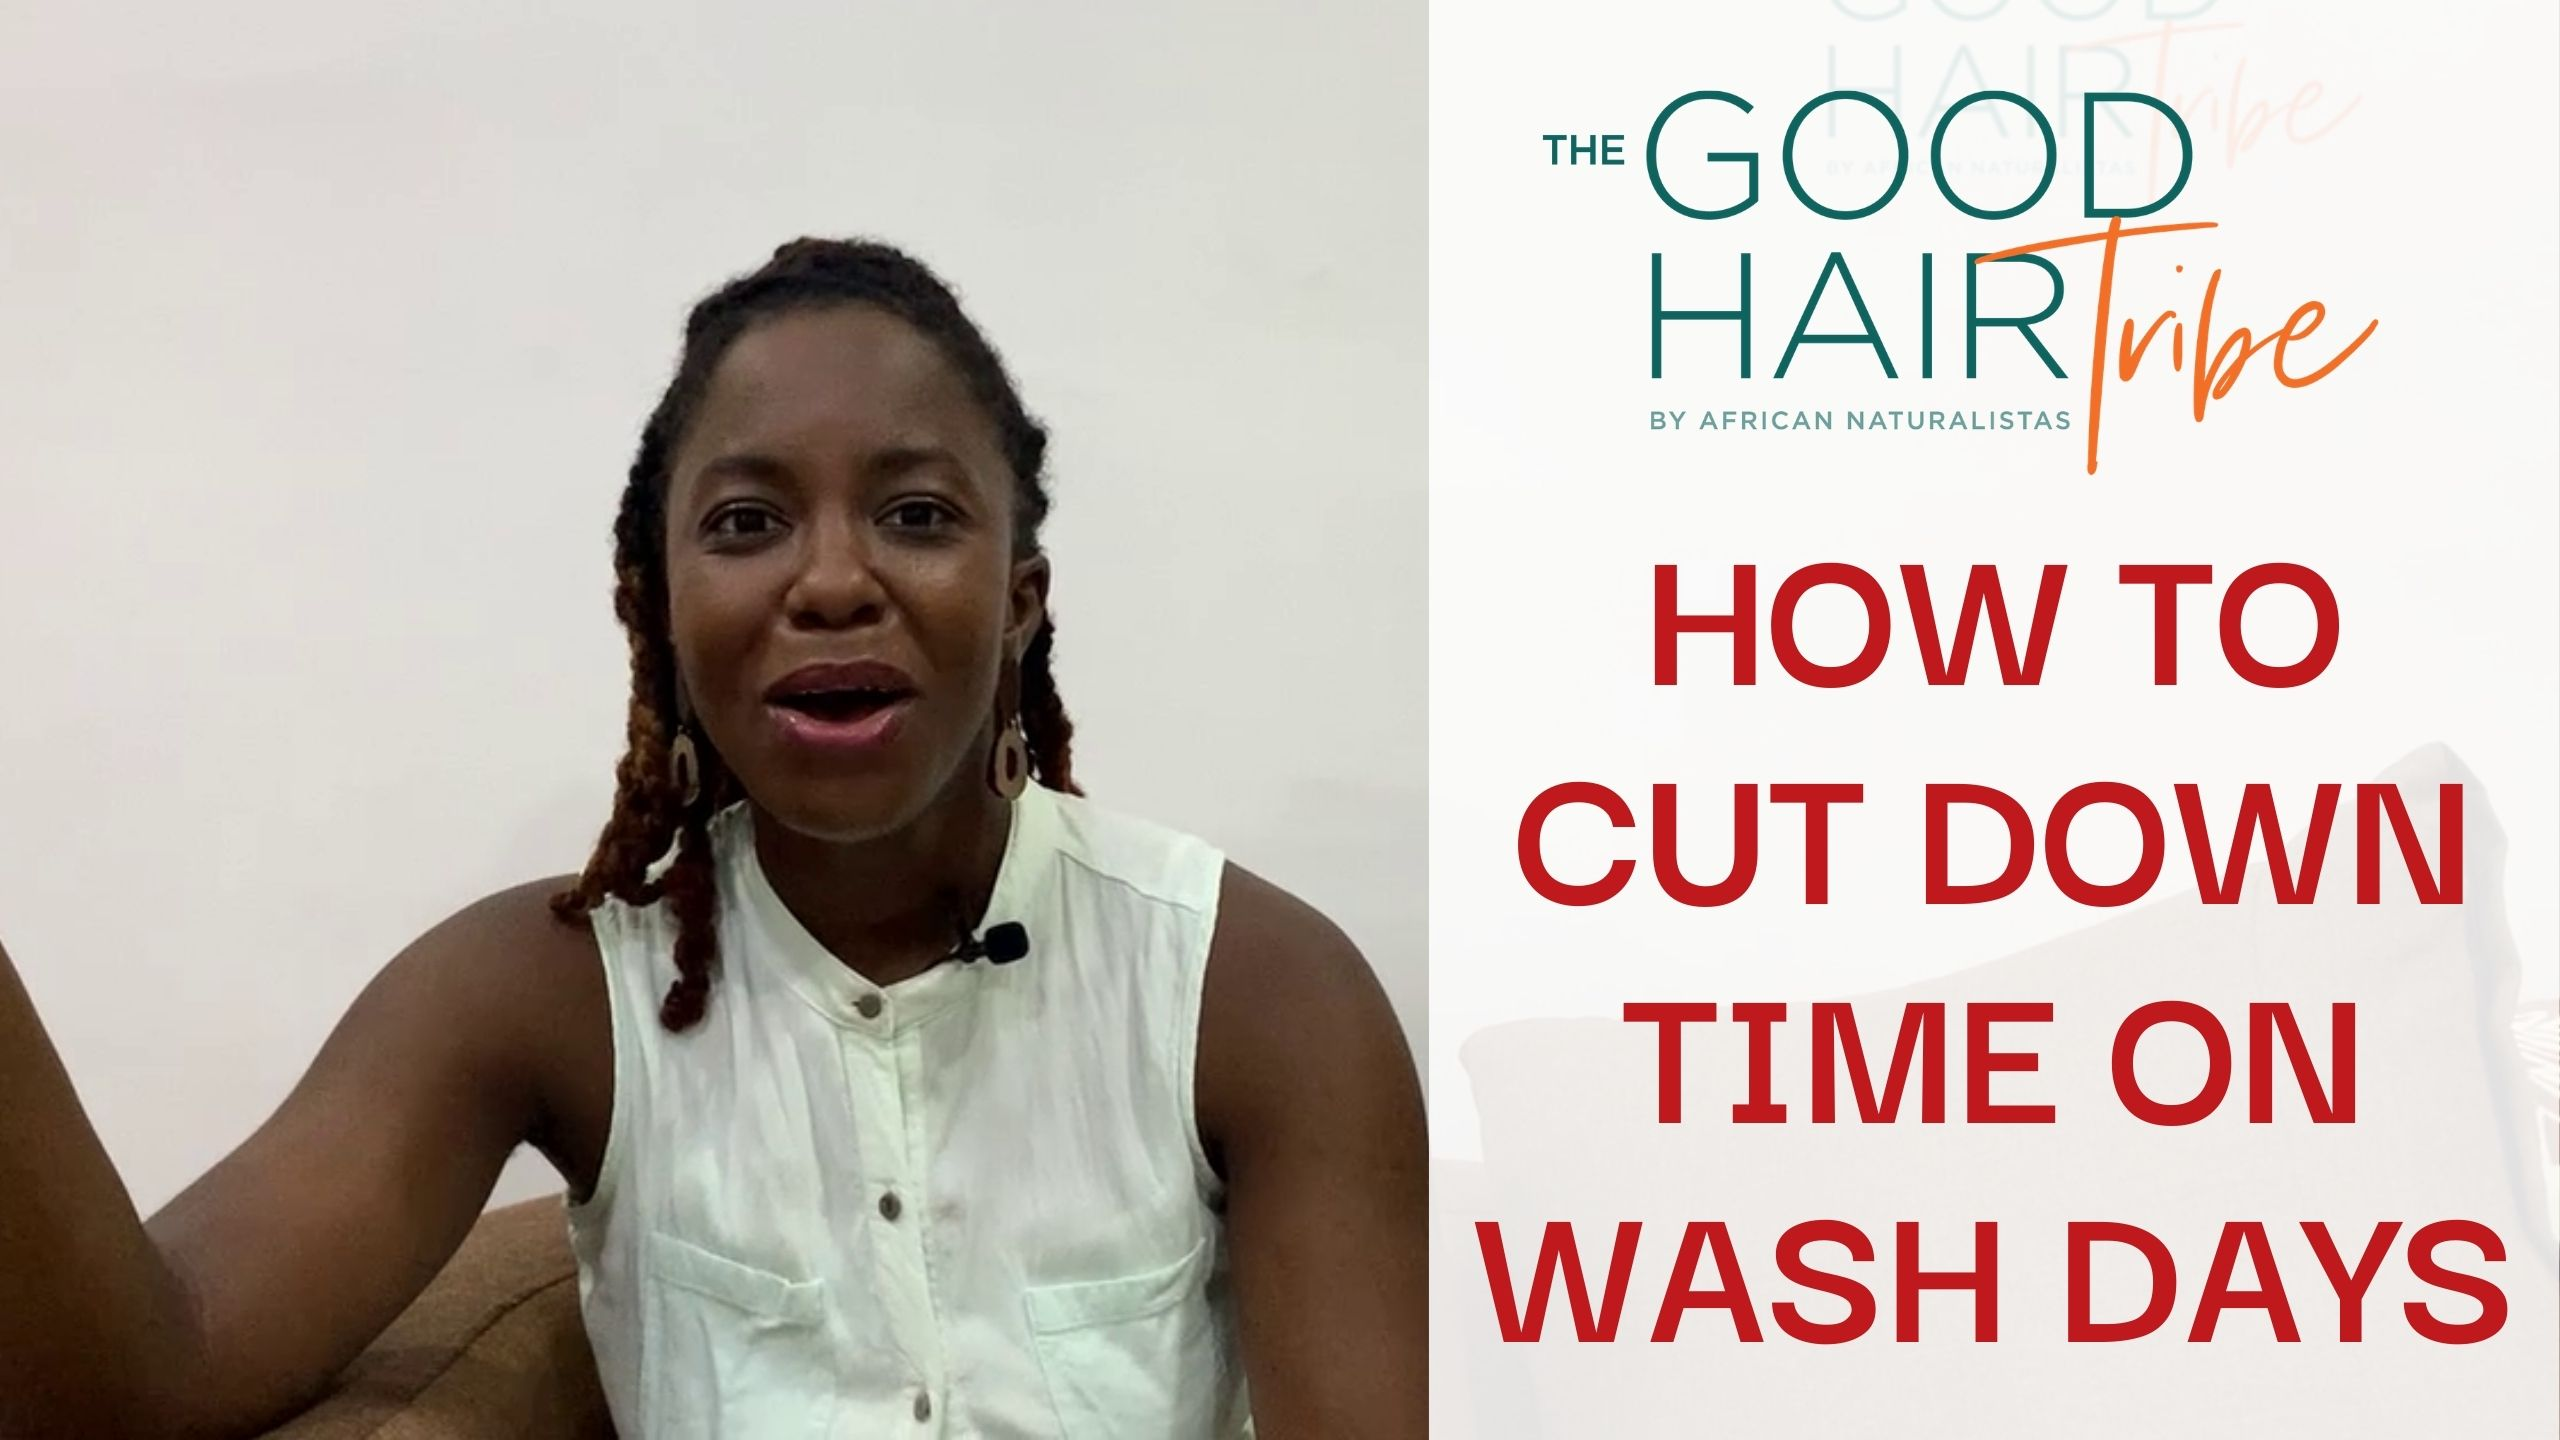 How to cut down time on Wash Days